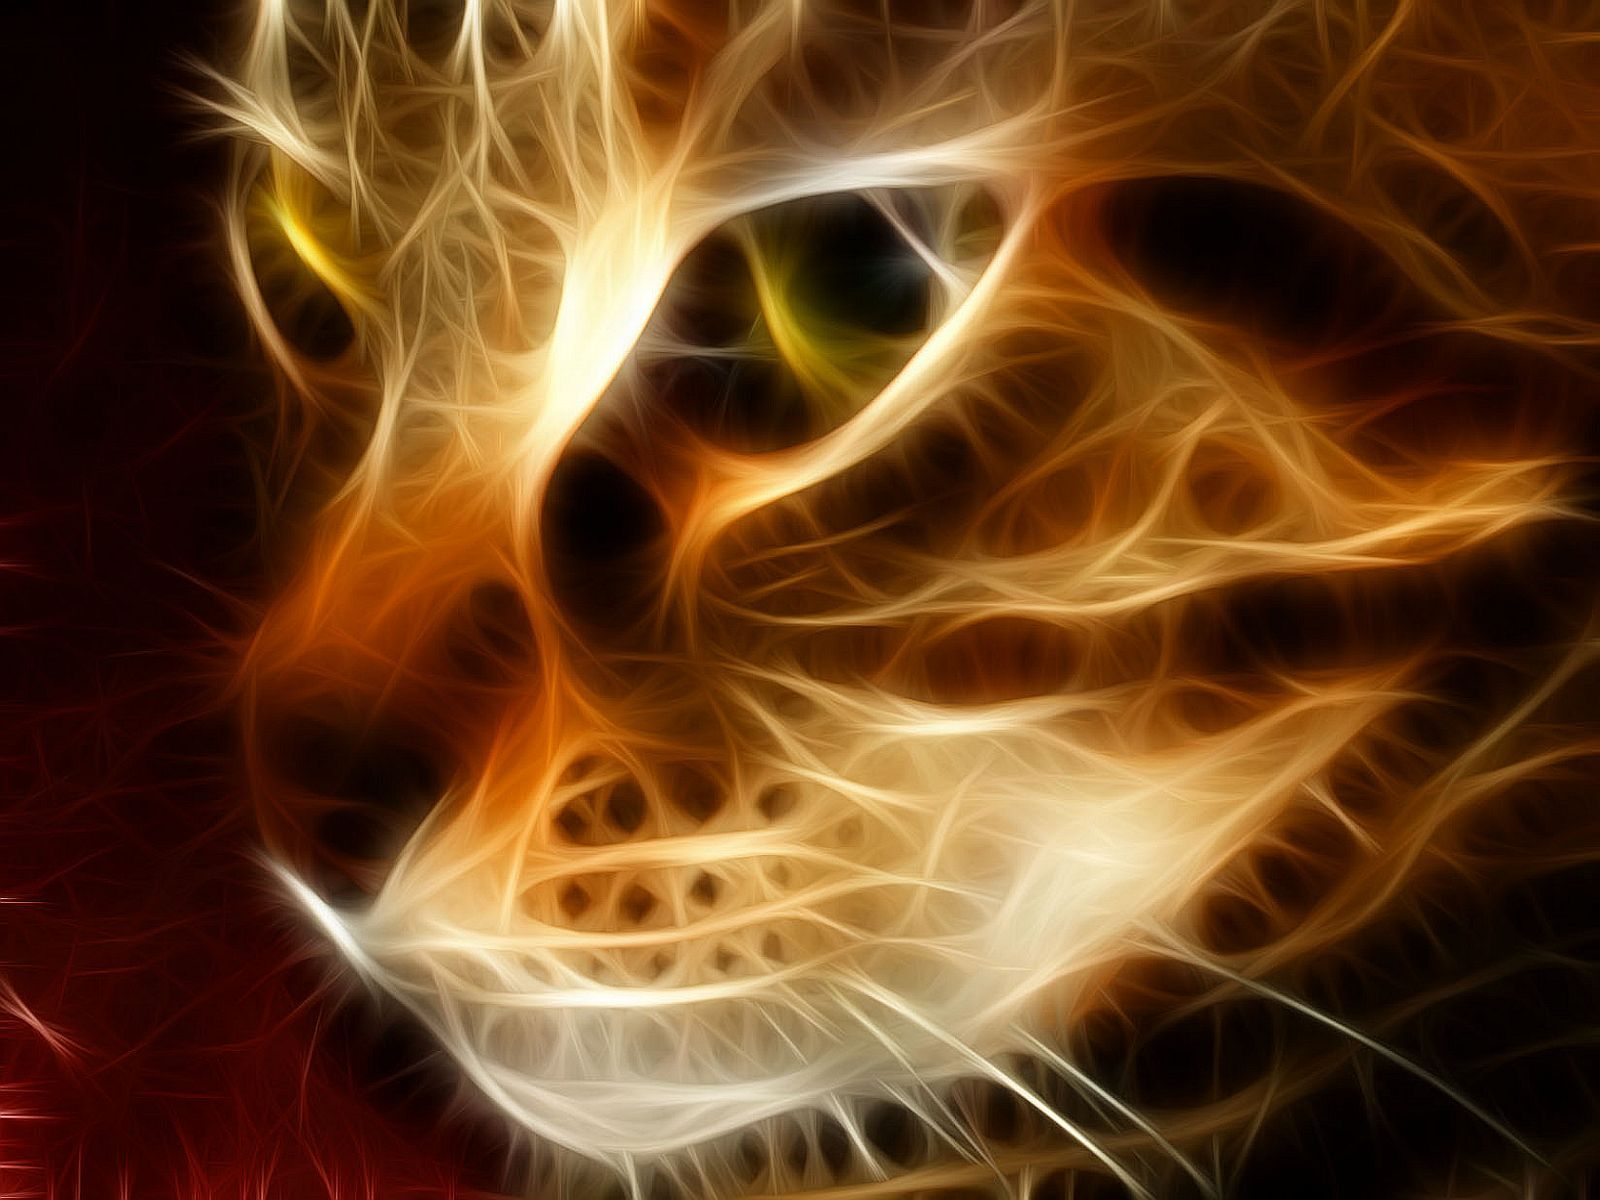 Animal - Cat  - Camelot - Fractal - Kitten Wallpaper